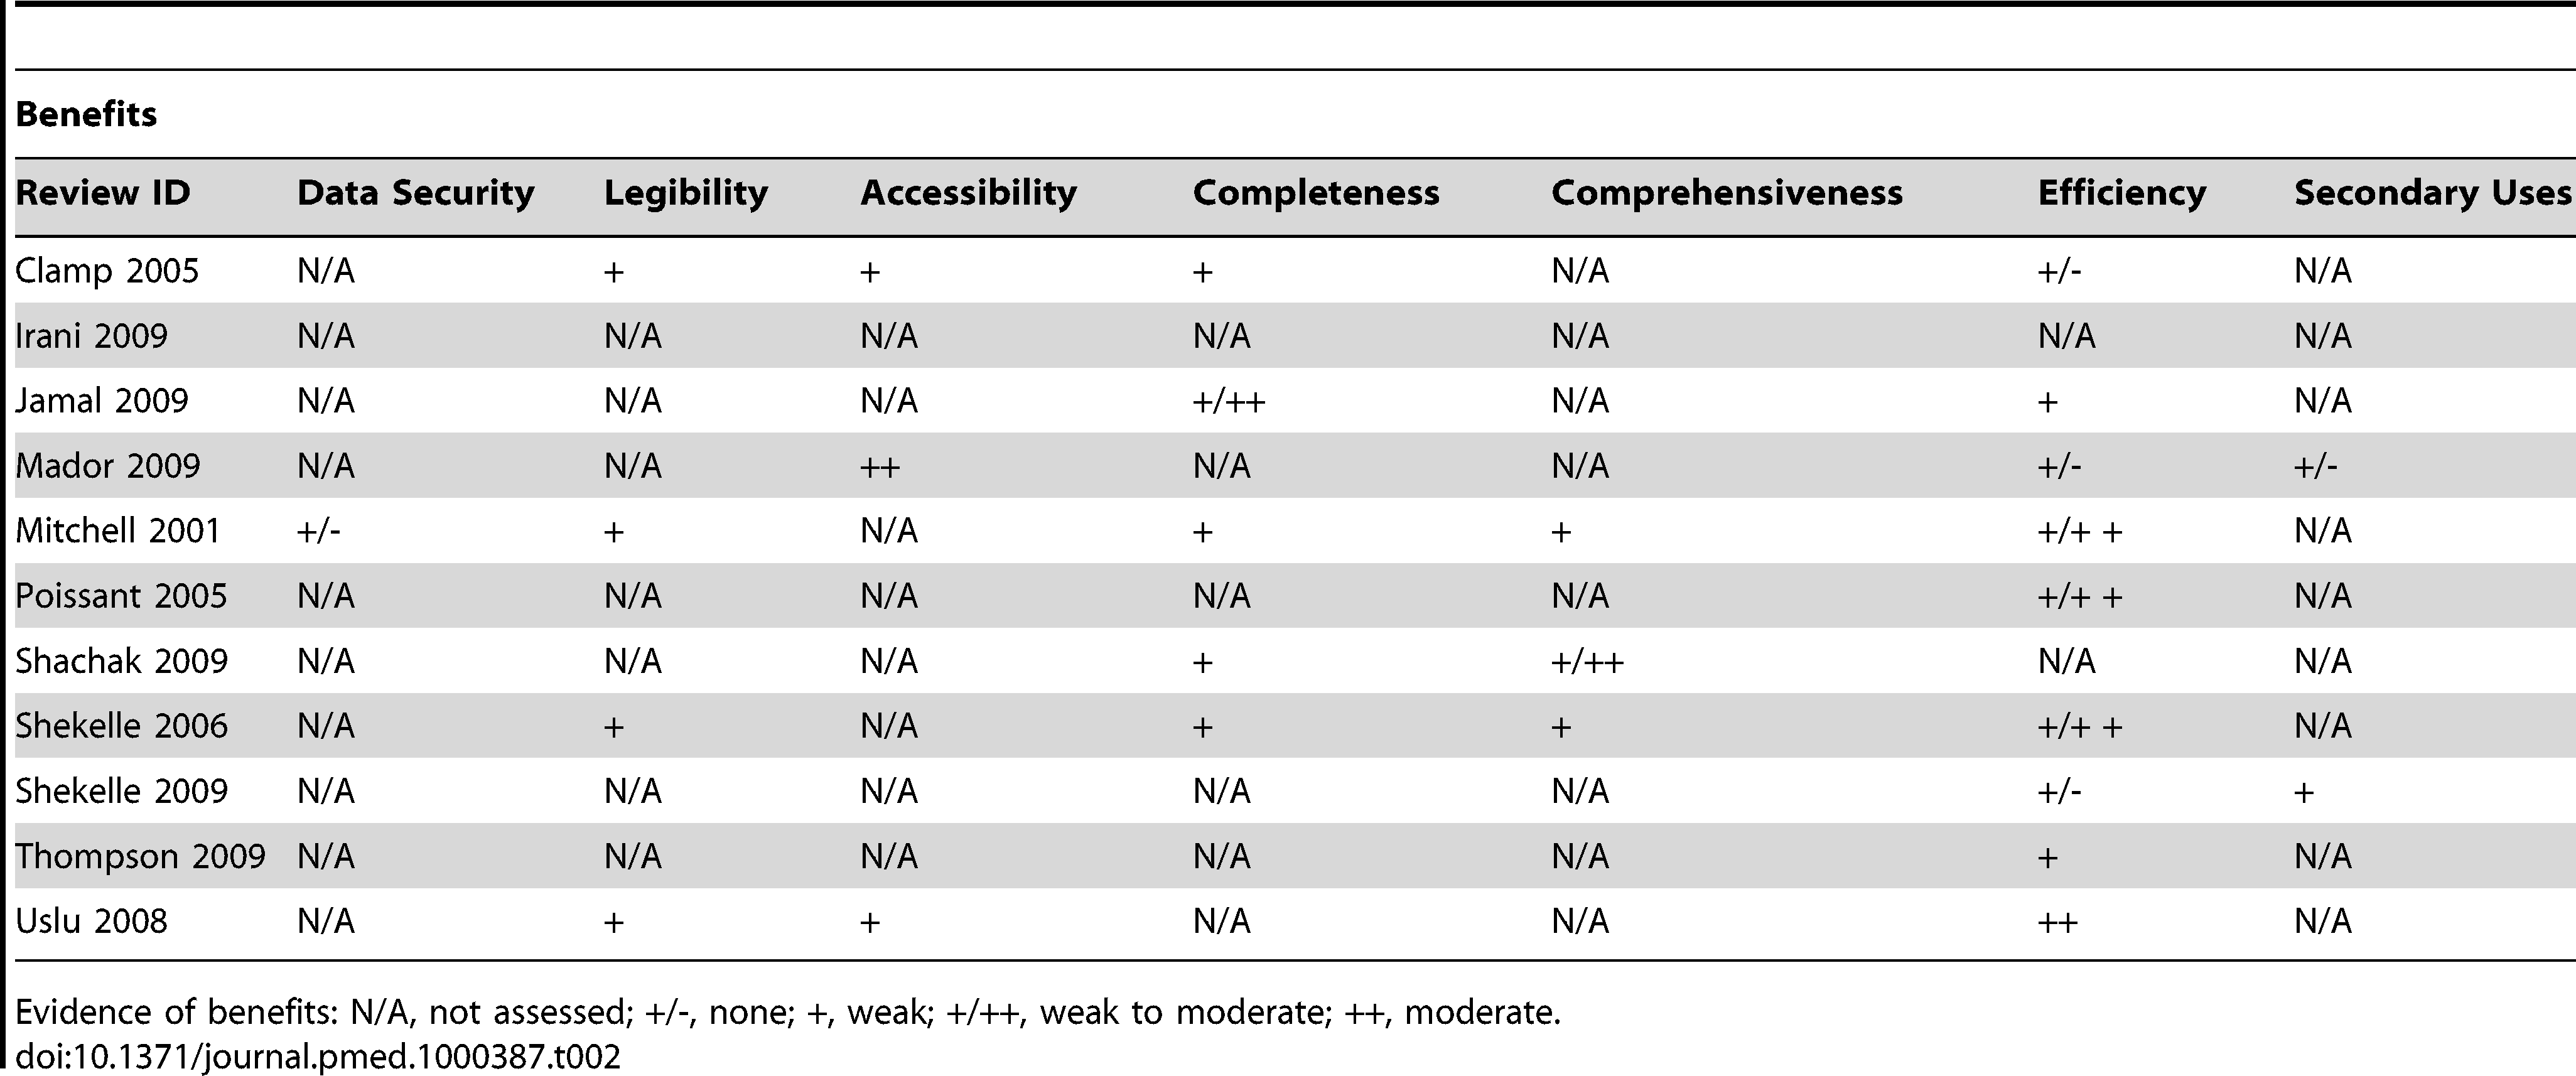 Evidence of benefits associated with EHRs.